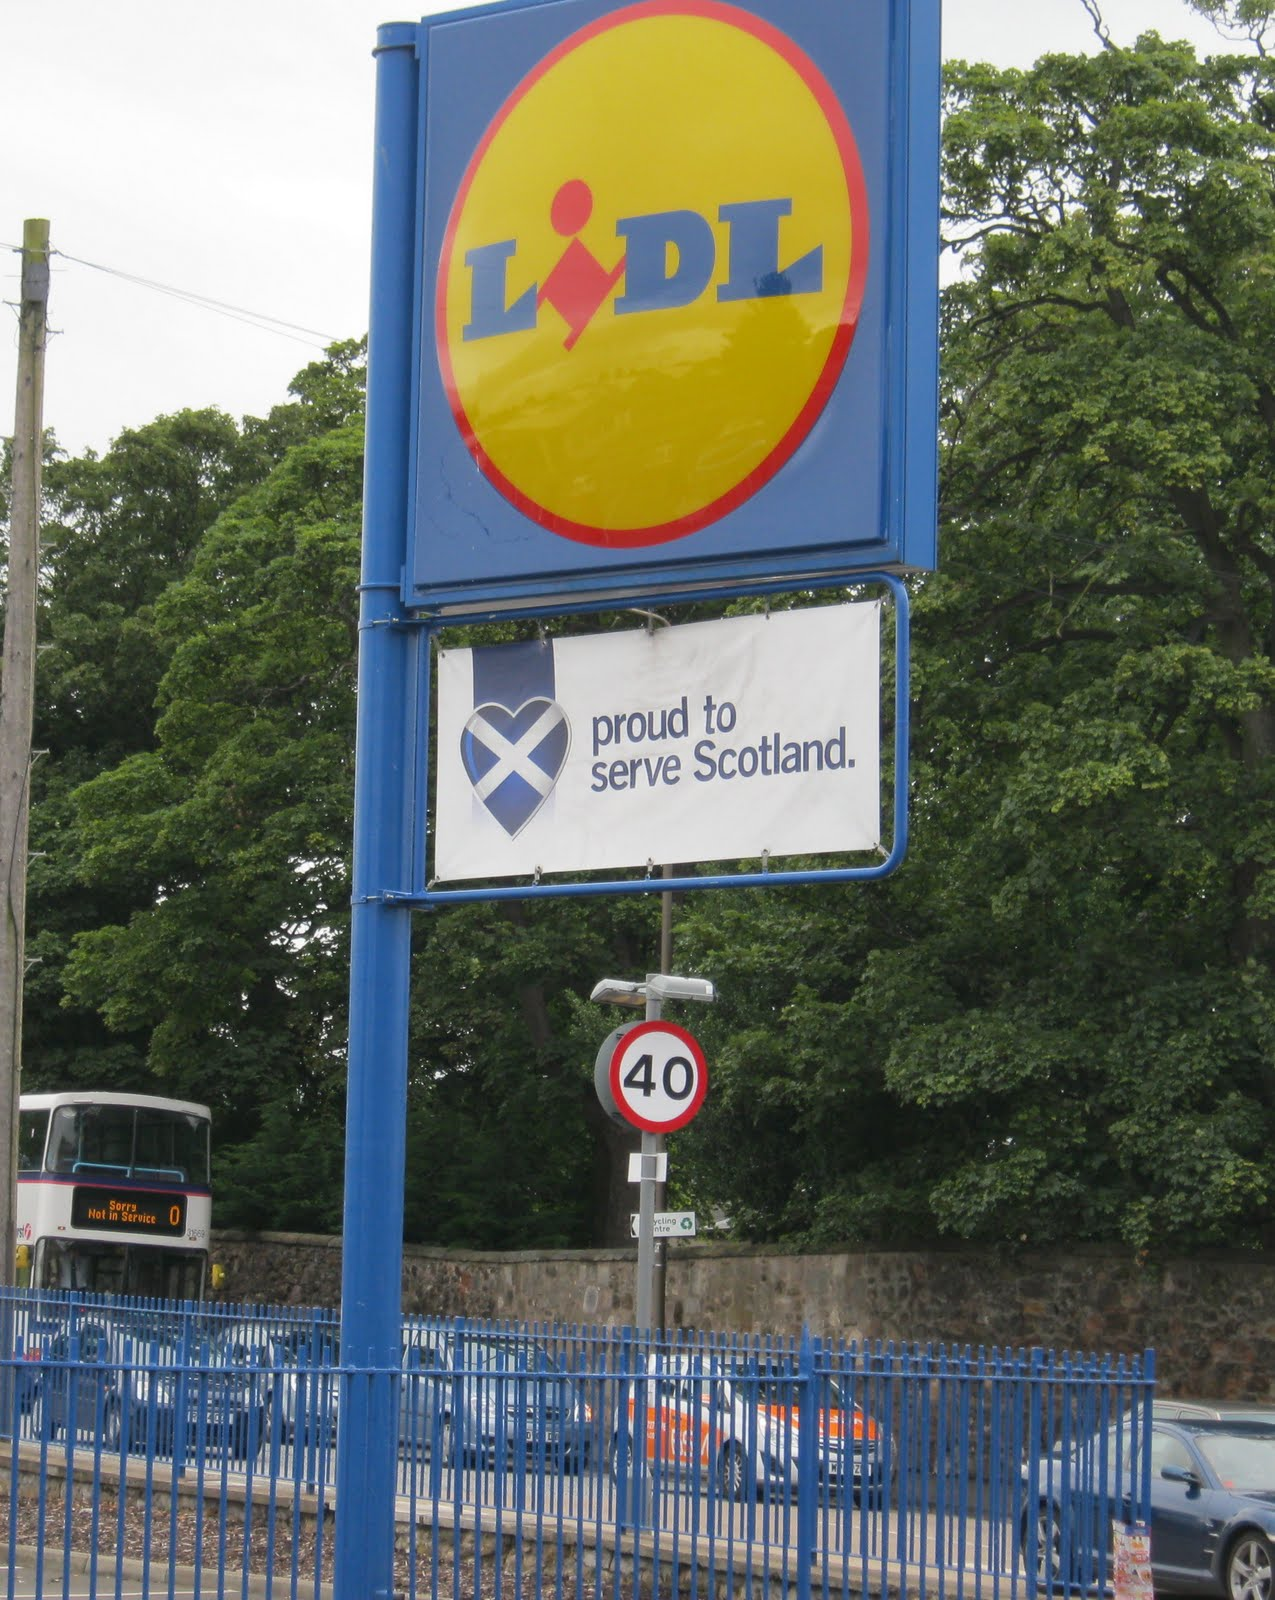 Lidl sign with Saltire saying Proud to Serve Scotland